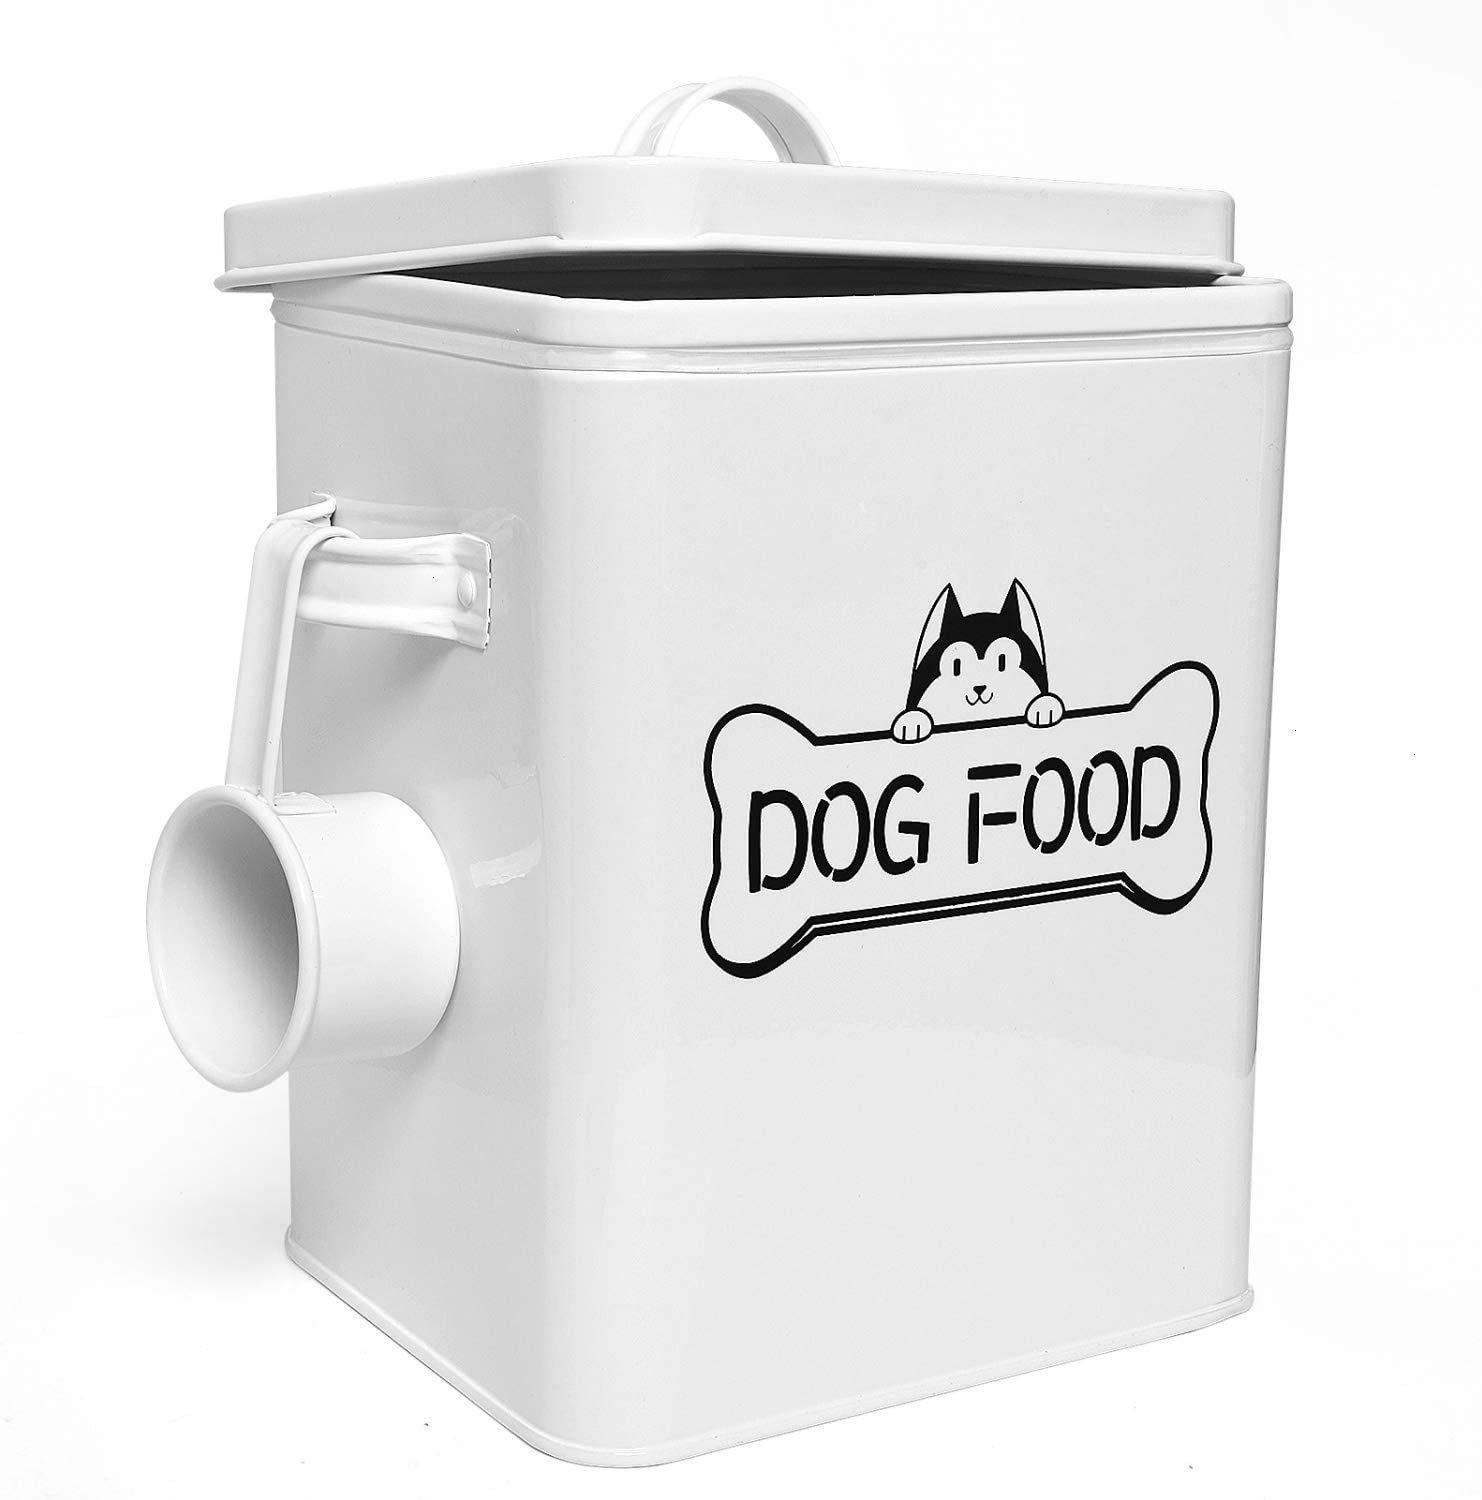 Vumdua Pet Treat and Food Storage Container with Serving Scoop - Farmhouse Dog Food Container with Lid, Airtight Dog Treat Storage Tins, Great Gift for Dog Owners, White